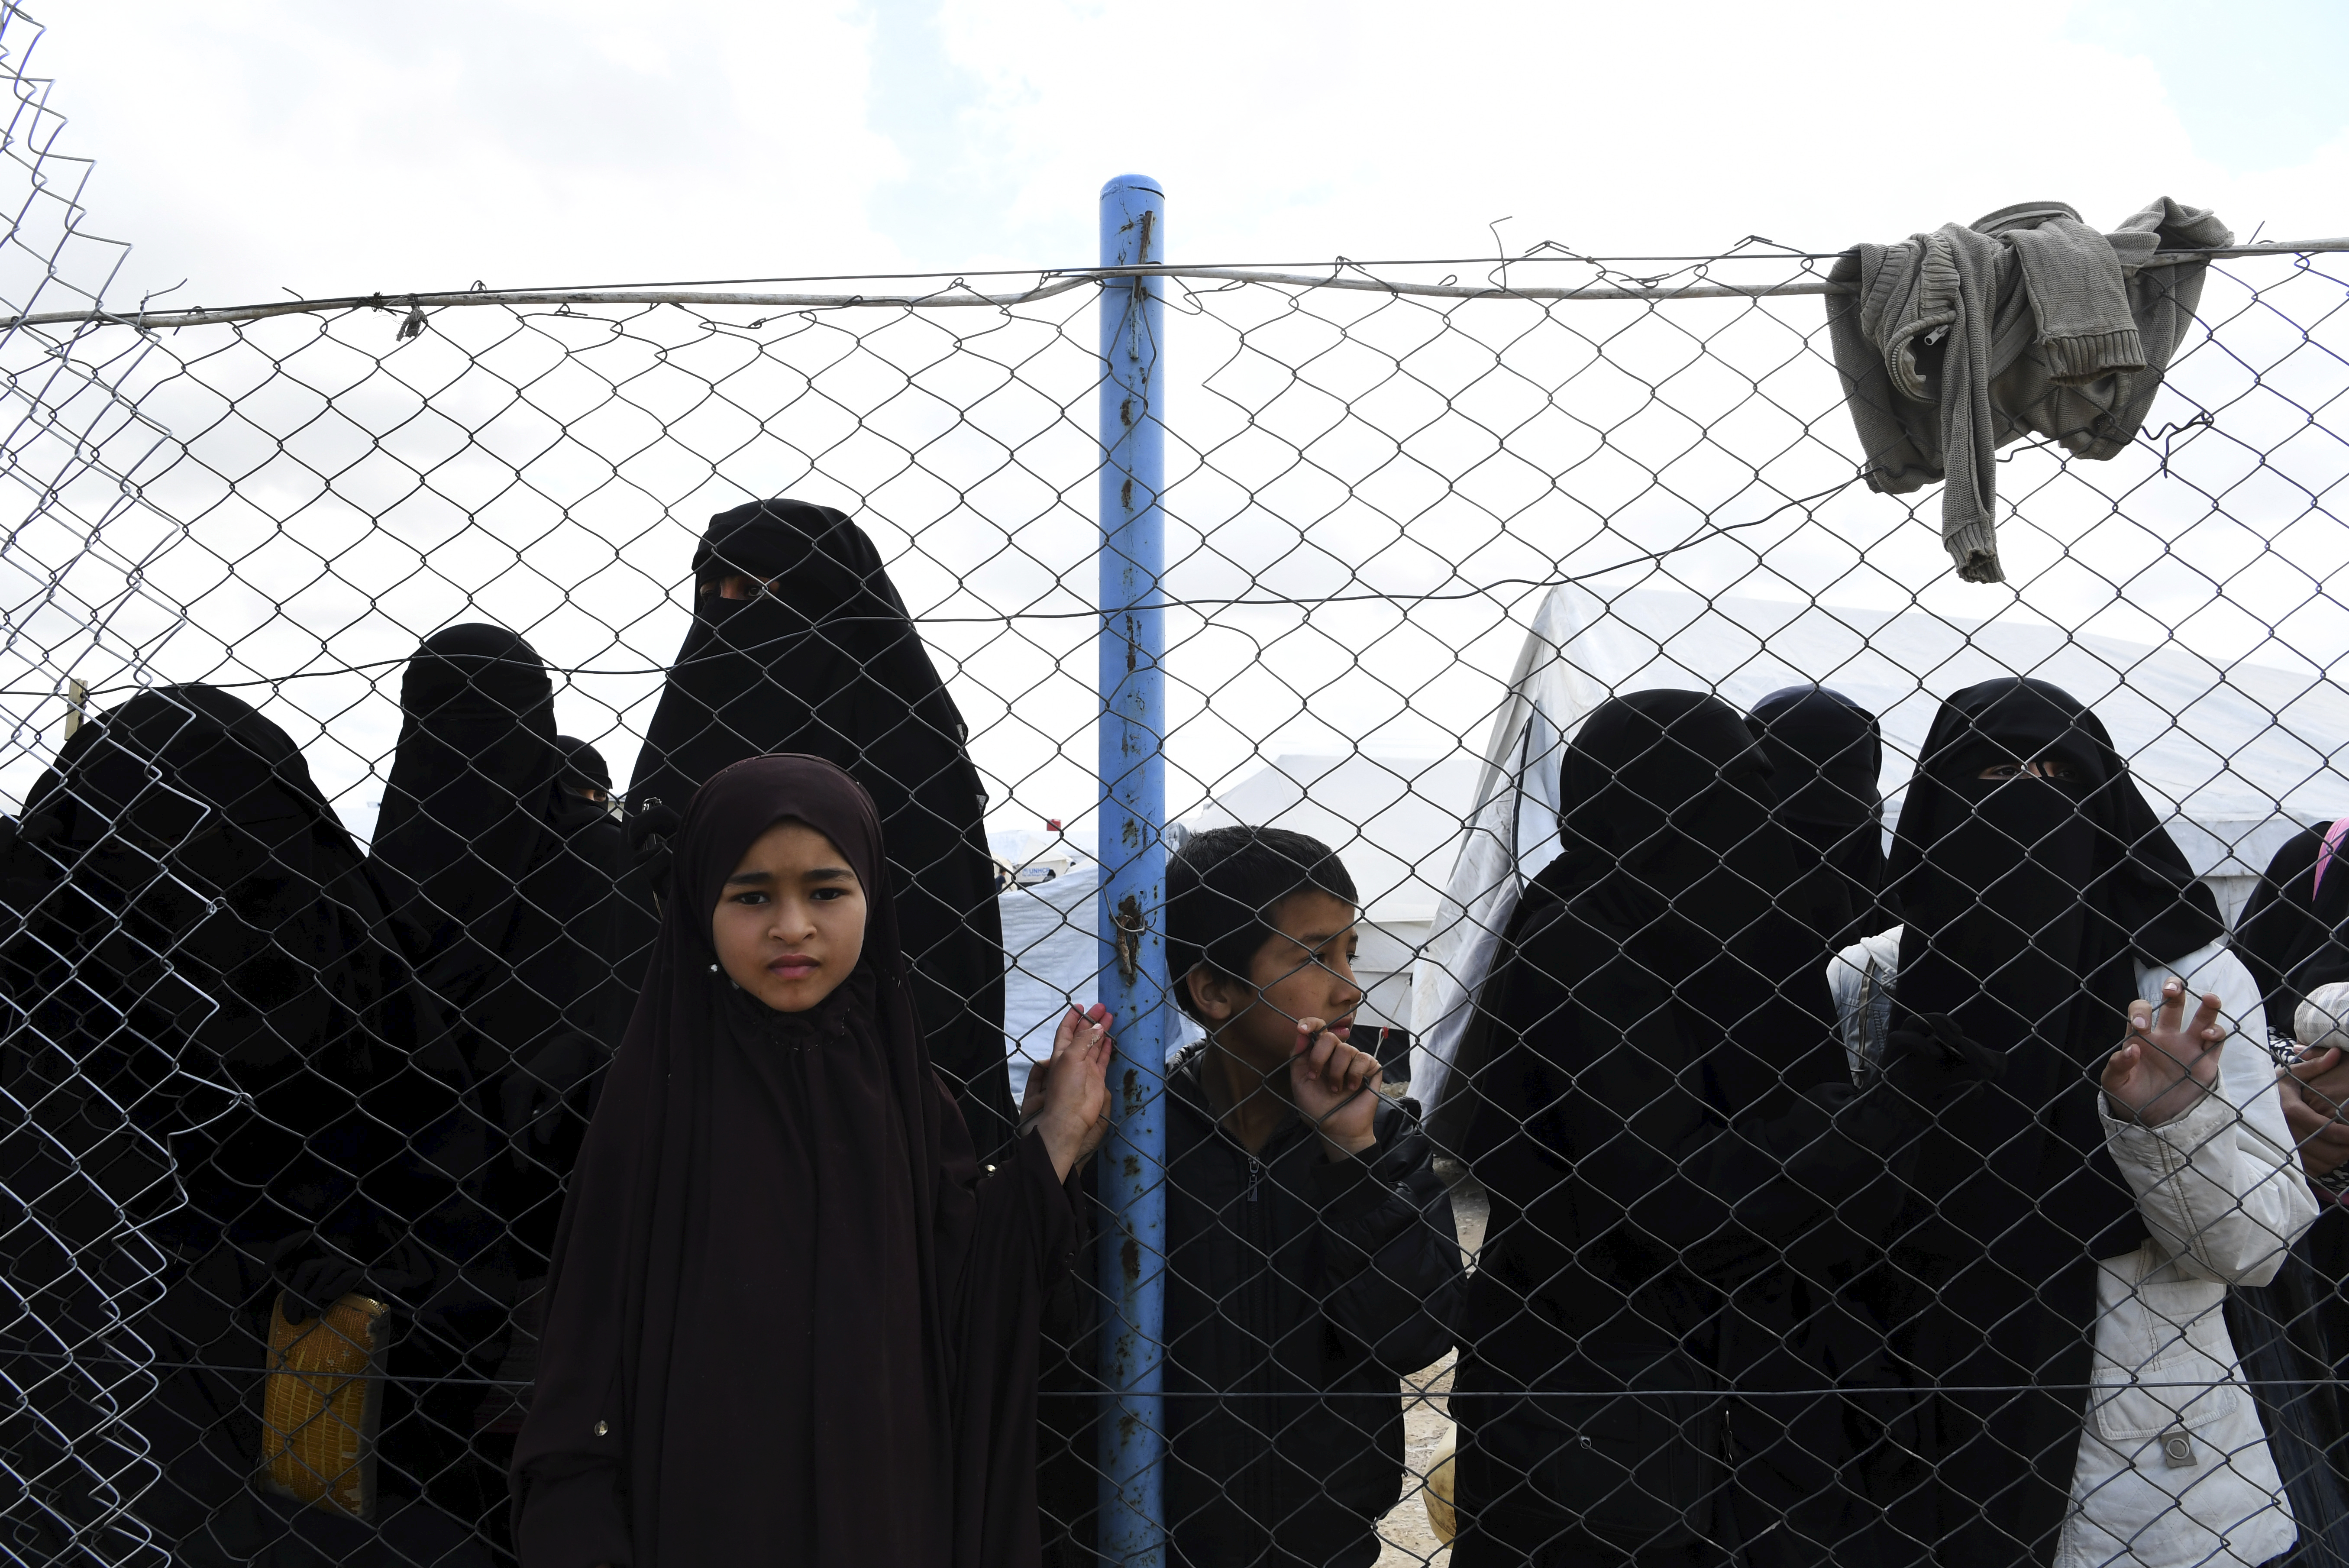 Wives and childern of former ISIS fighters gather at the fence in the foreign section of the al-Hawl refugee camp in northern Syria on April 2, 2019. The camp is home to around 72,000 people displaced from territories that were formerly occupied by Islamic State.